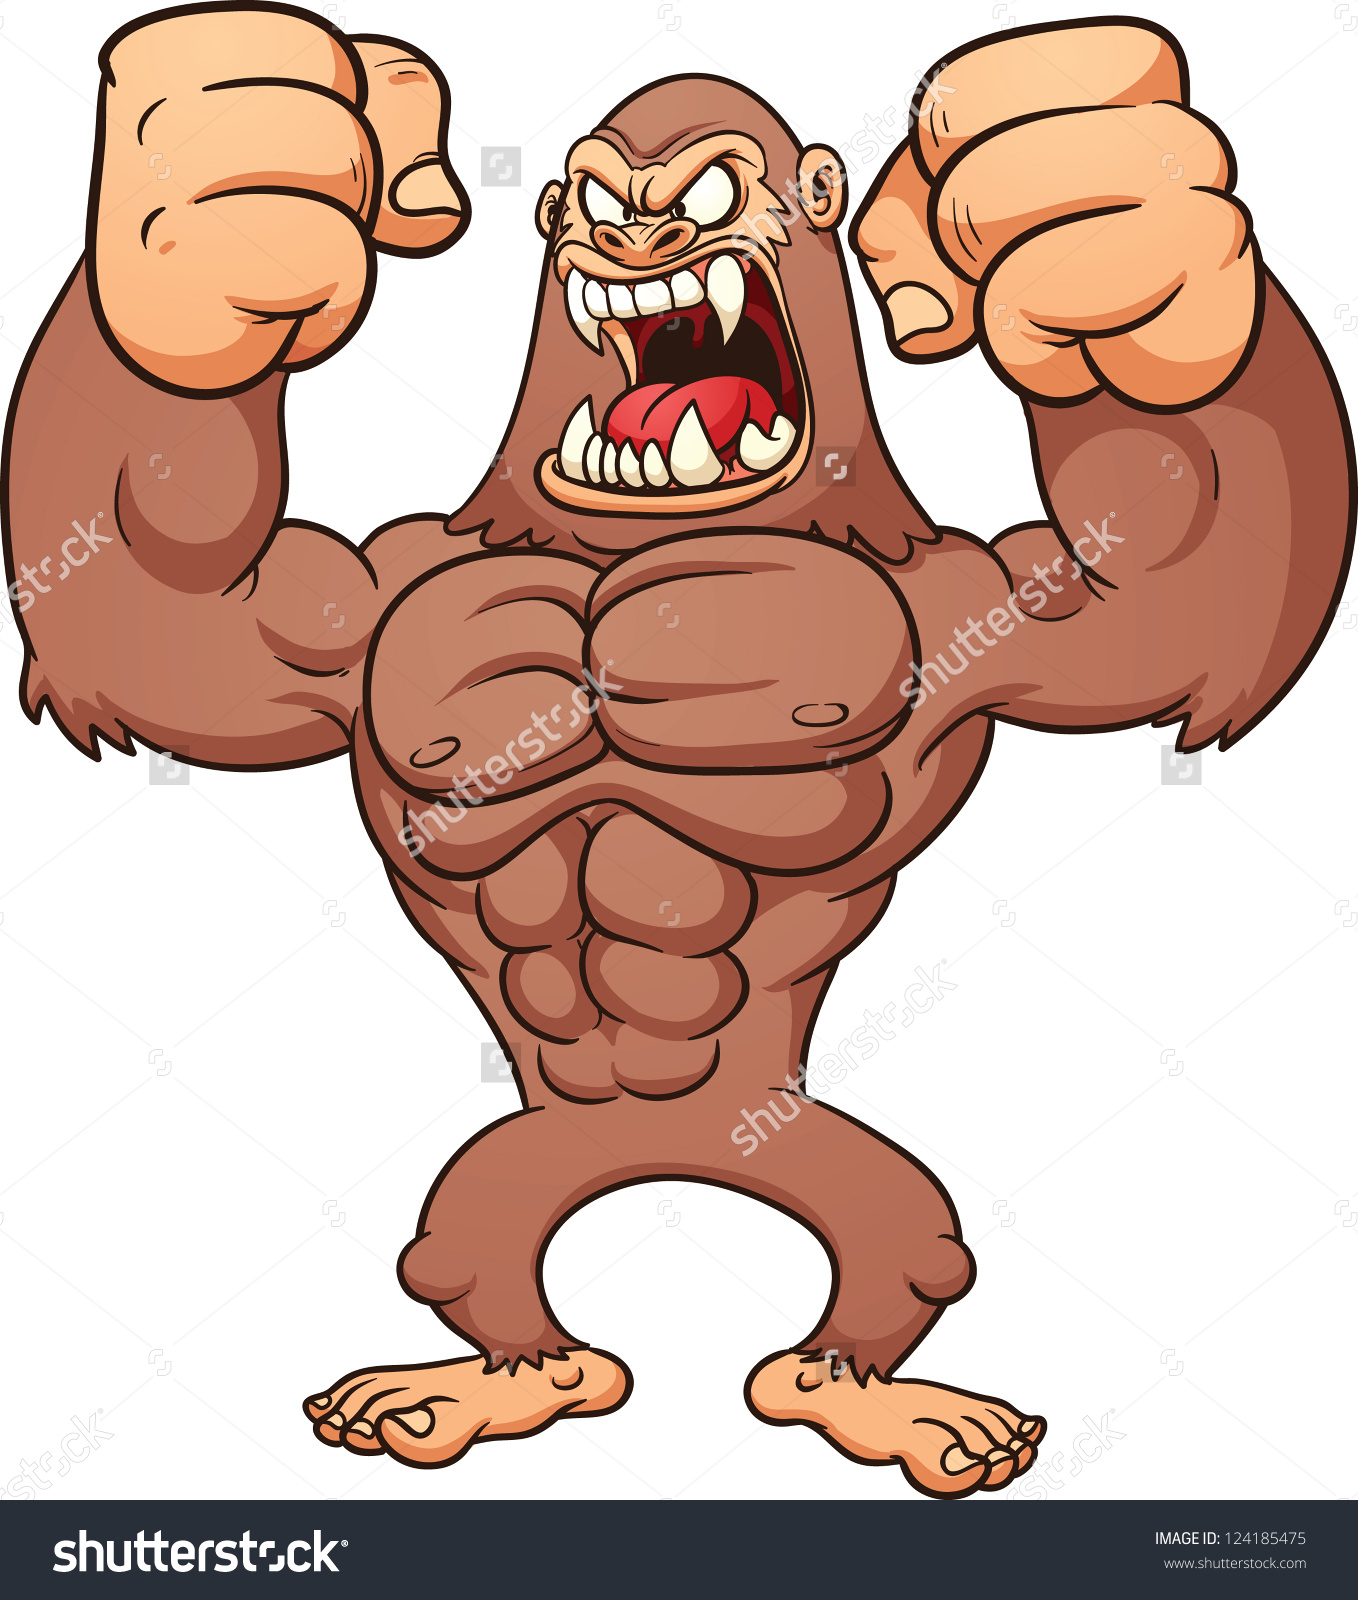 Sasquatch clipart Bigfoot Download drawings clipart clipart